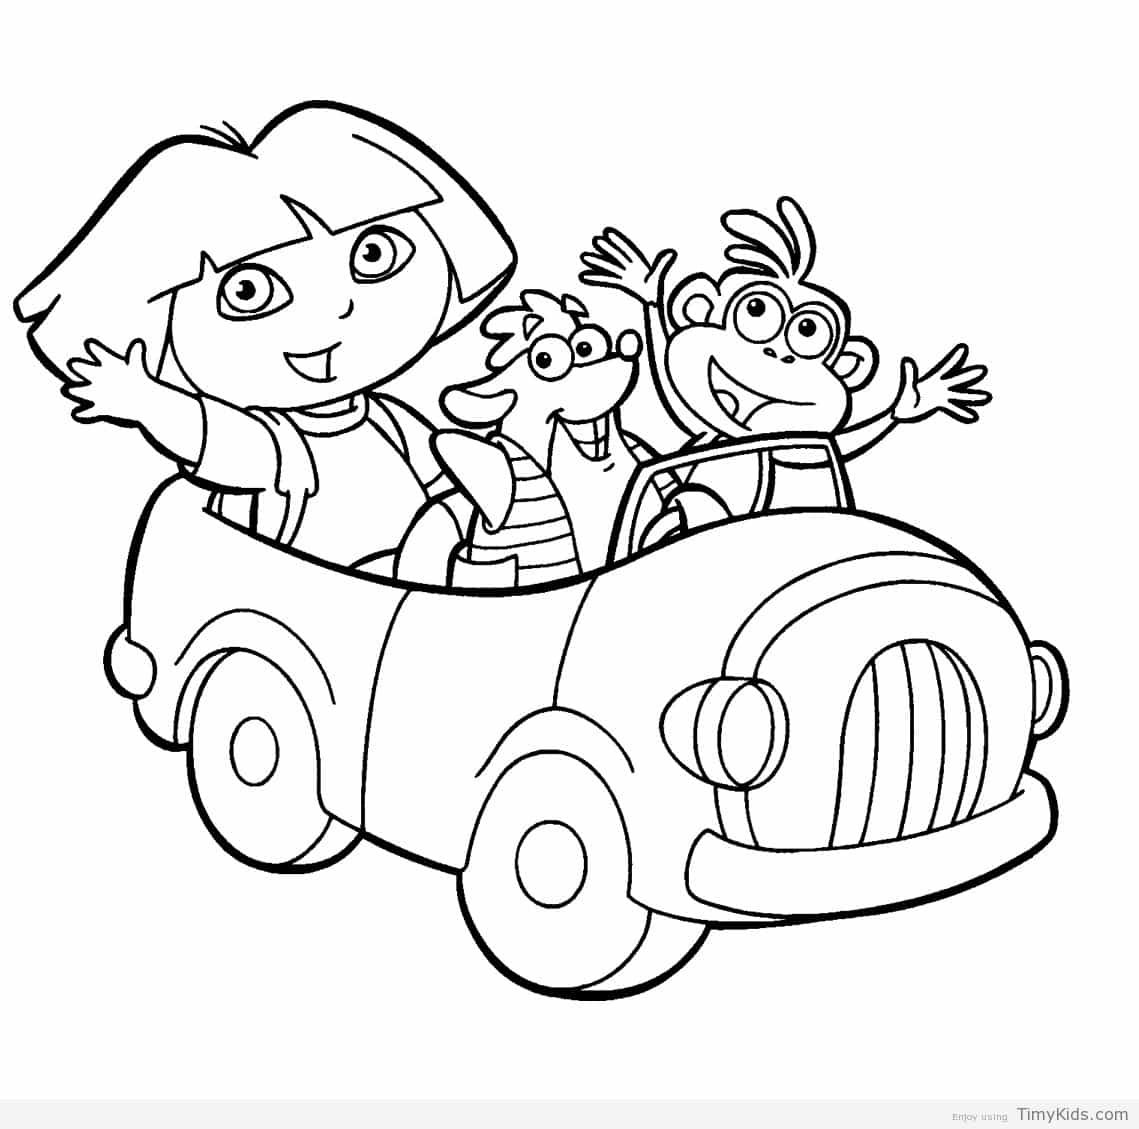 http://timykids.com/dora-the-explorer-coloring-page.html | Colorings ...